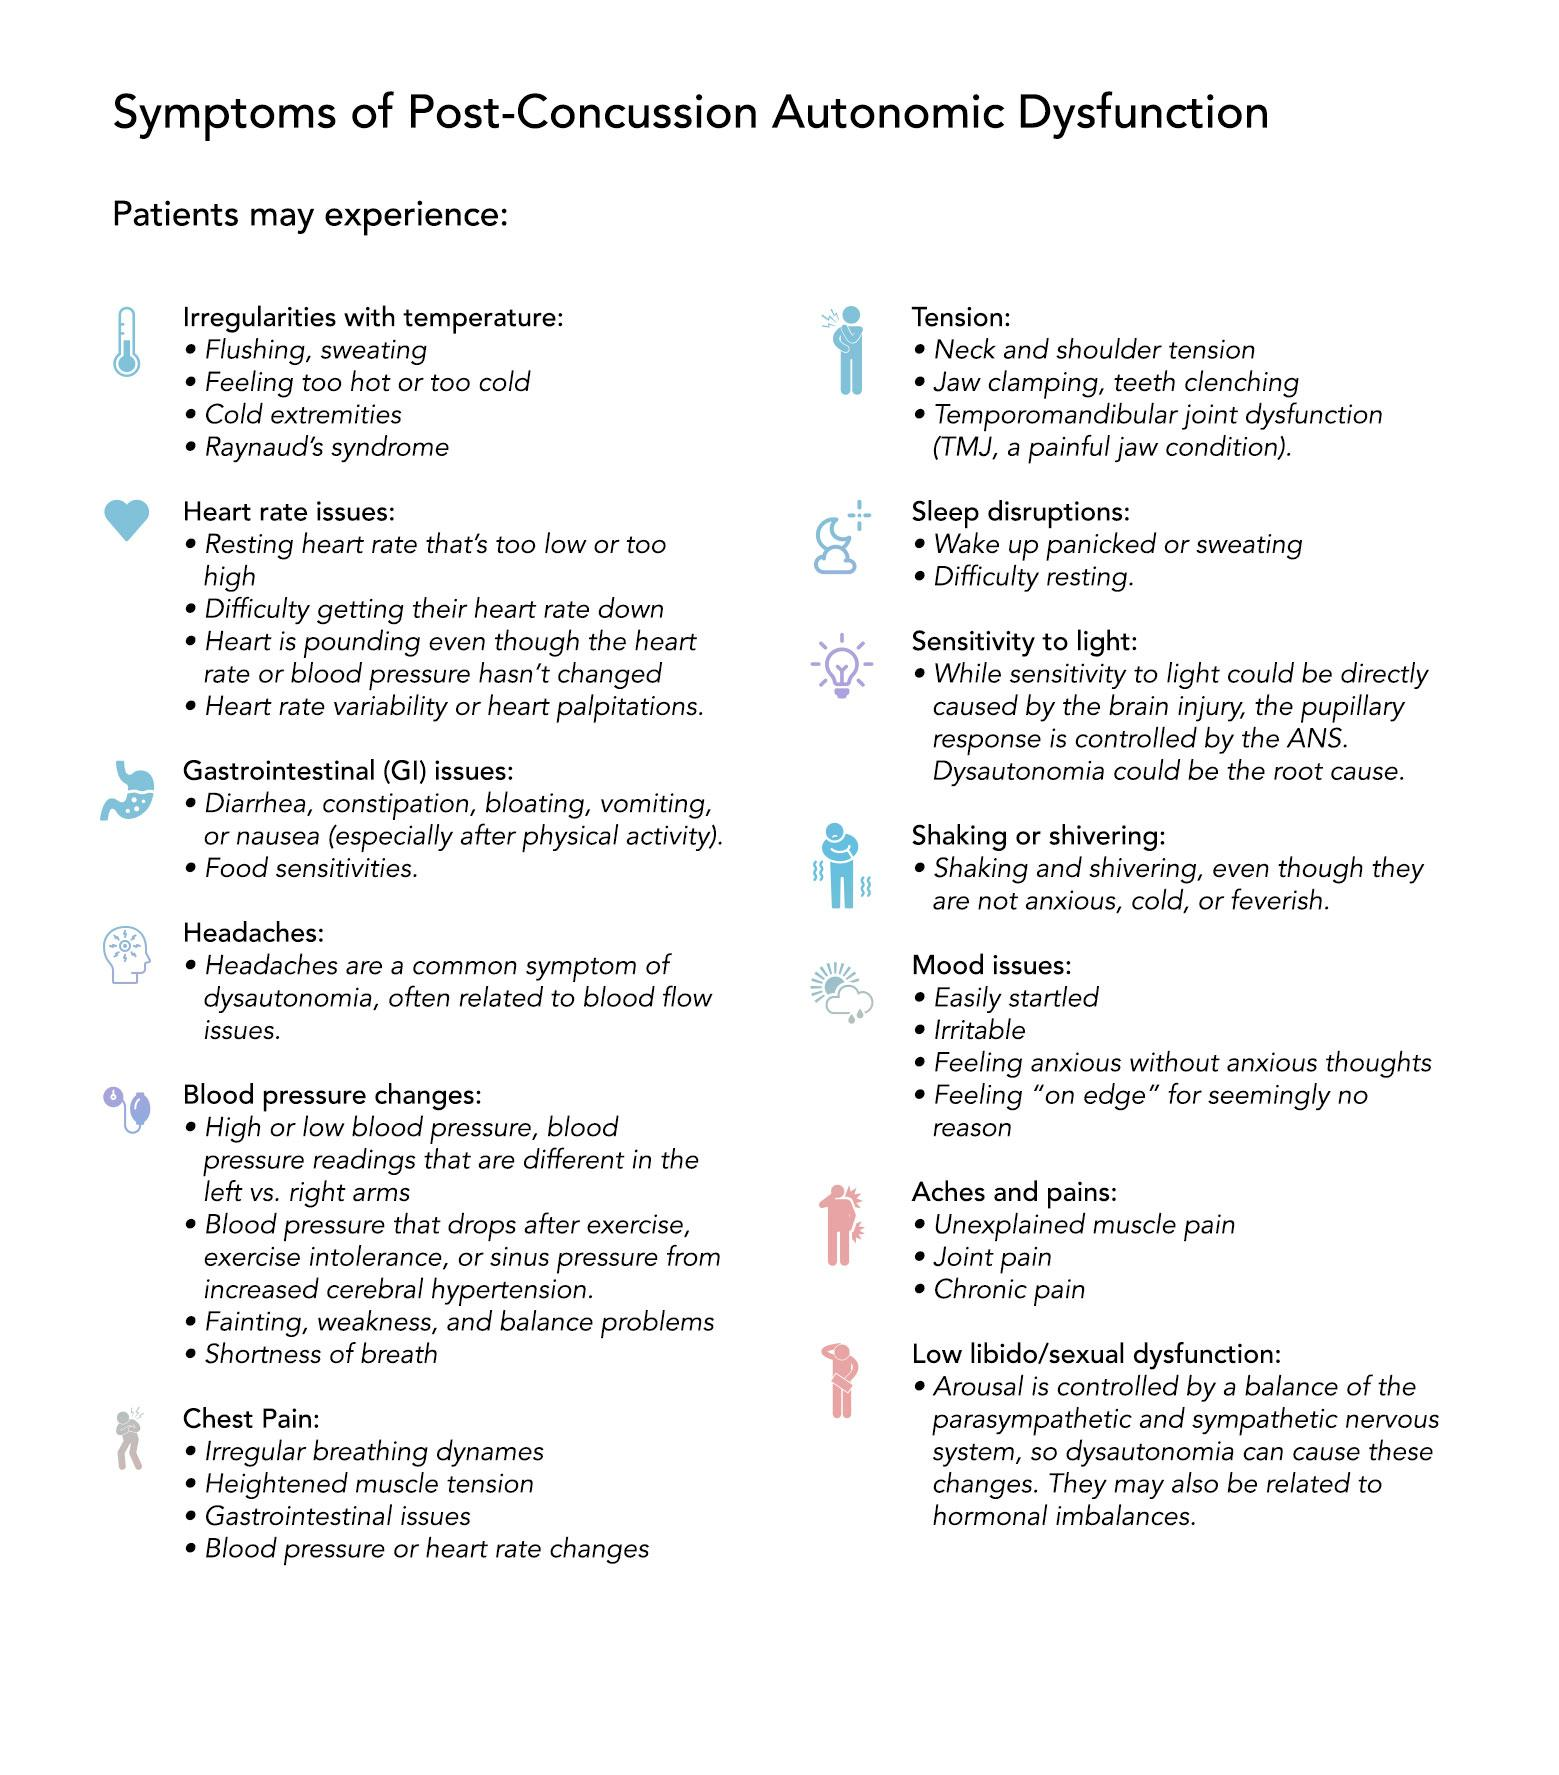 Symptoms of Post-Concussion Autonomic Dysfunction